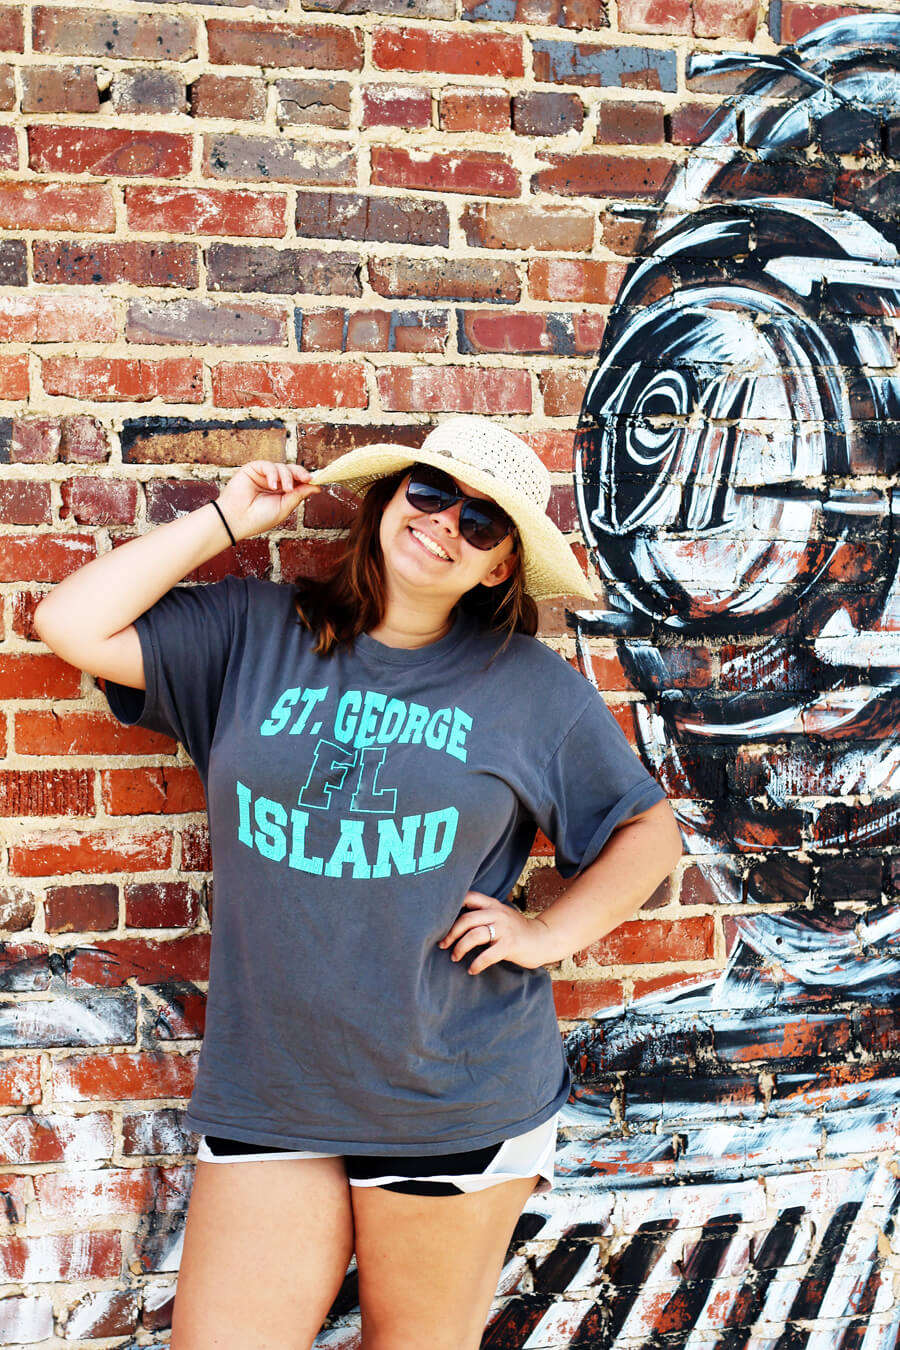 A picture of a girl wearing summer outfit in hat in sunglasses, posing in front of a brick wall with a mural painted on it